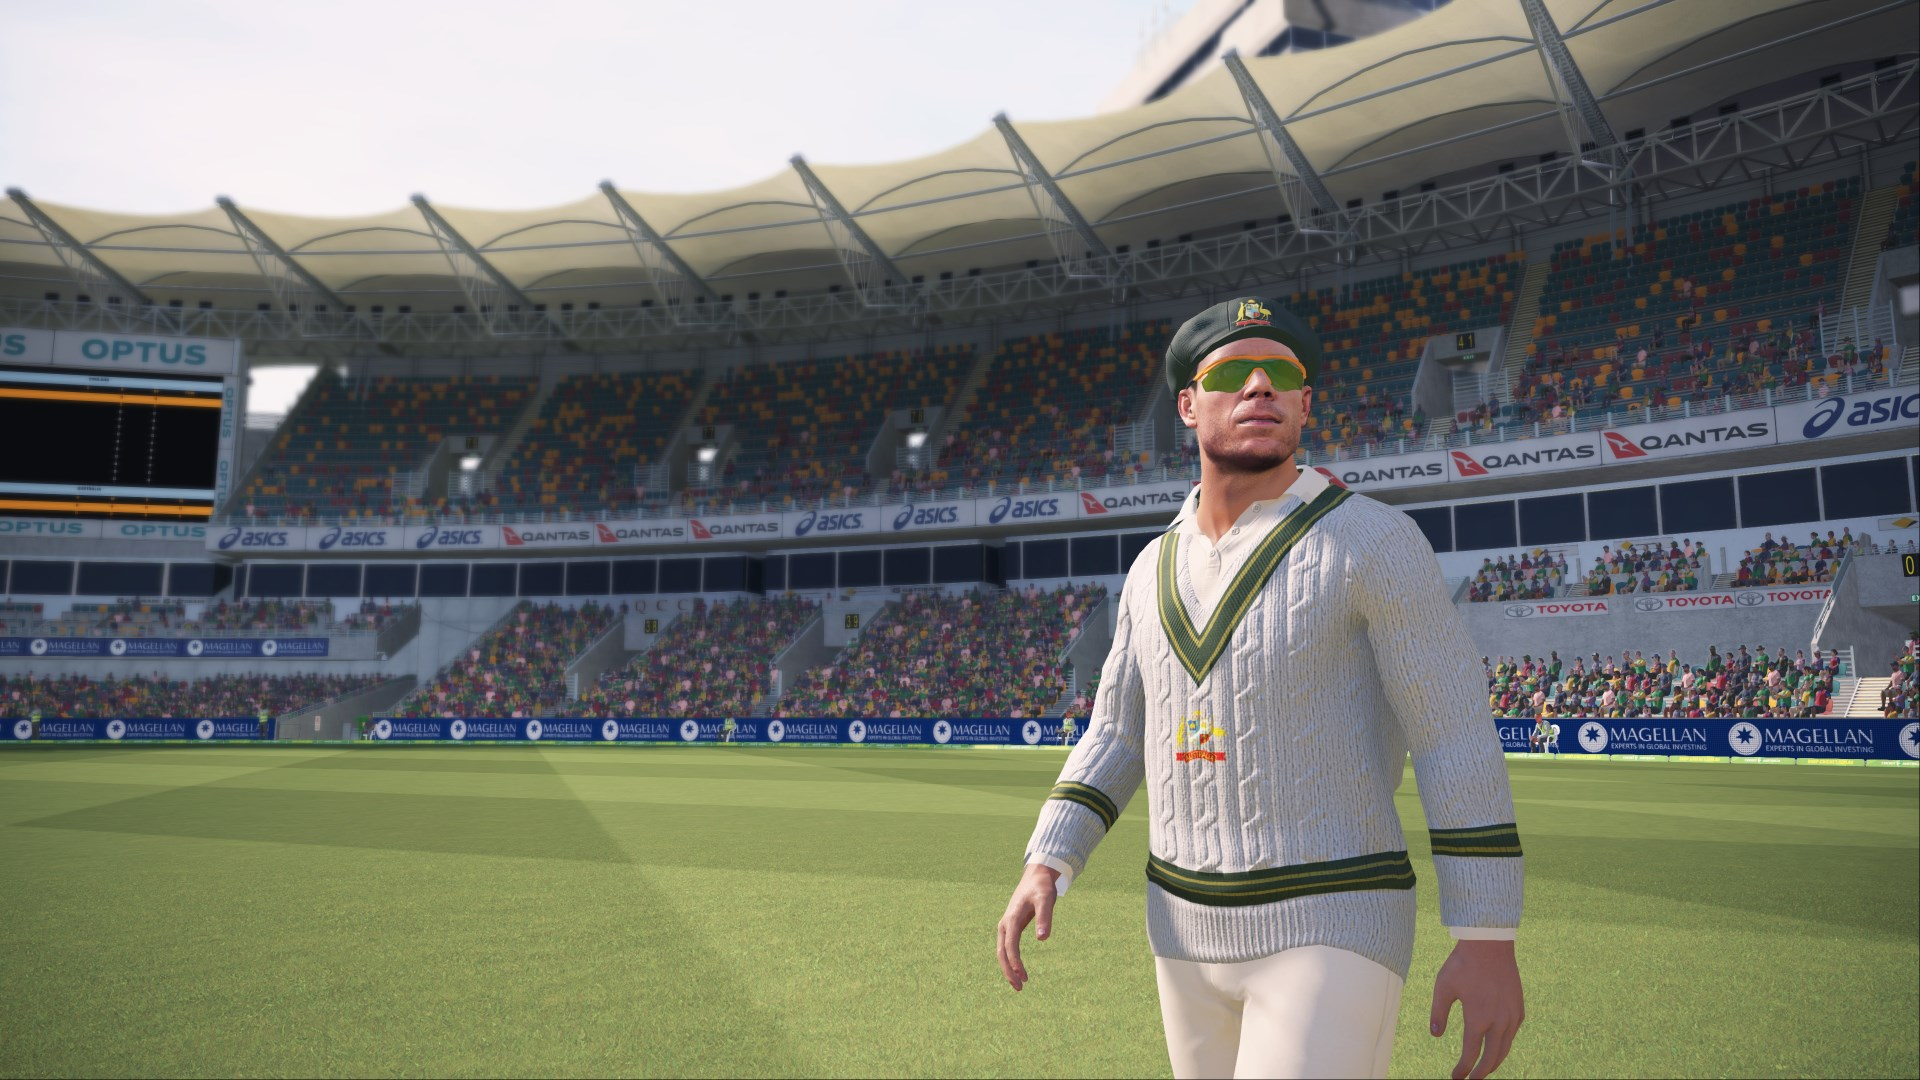 ASHES CRICKET скриншот 2